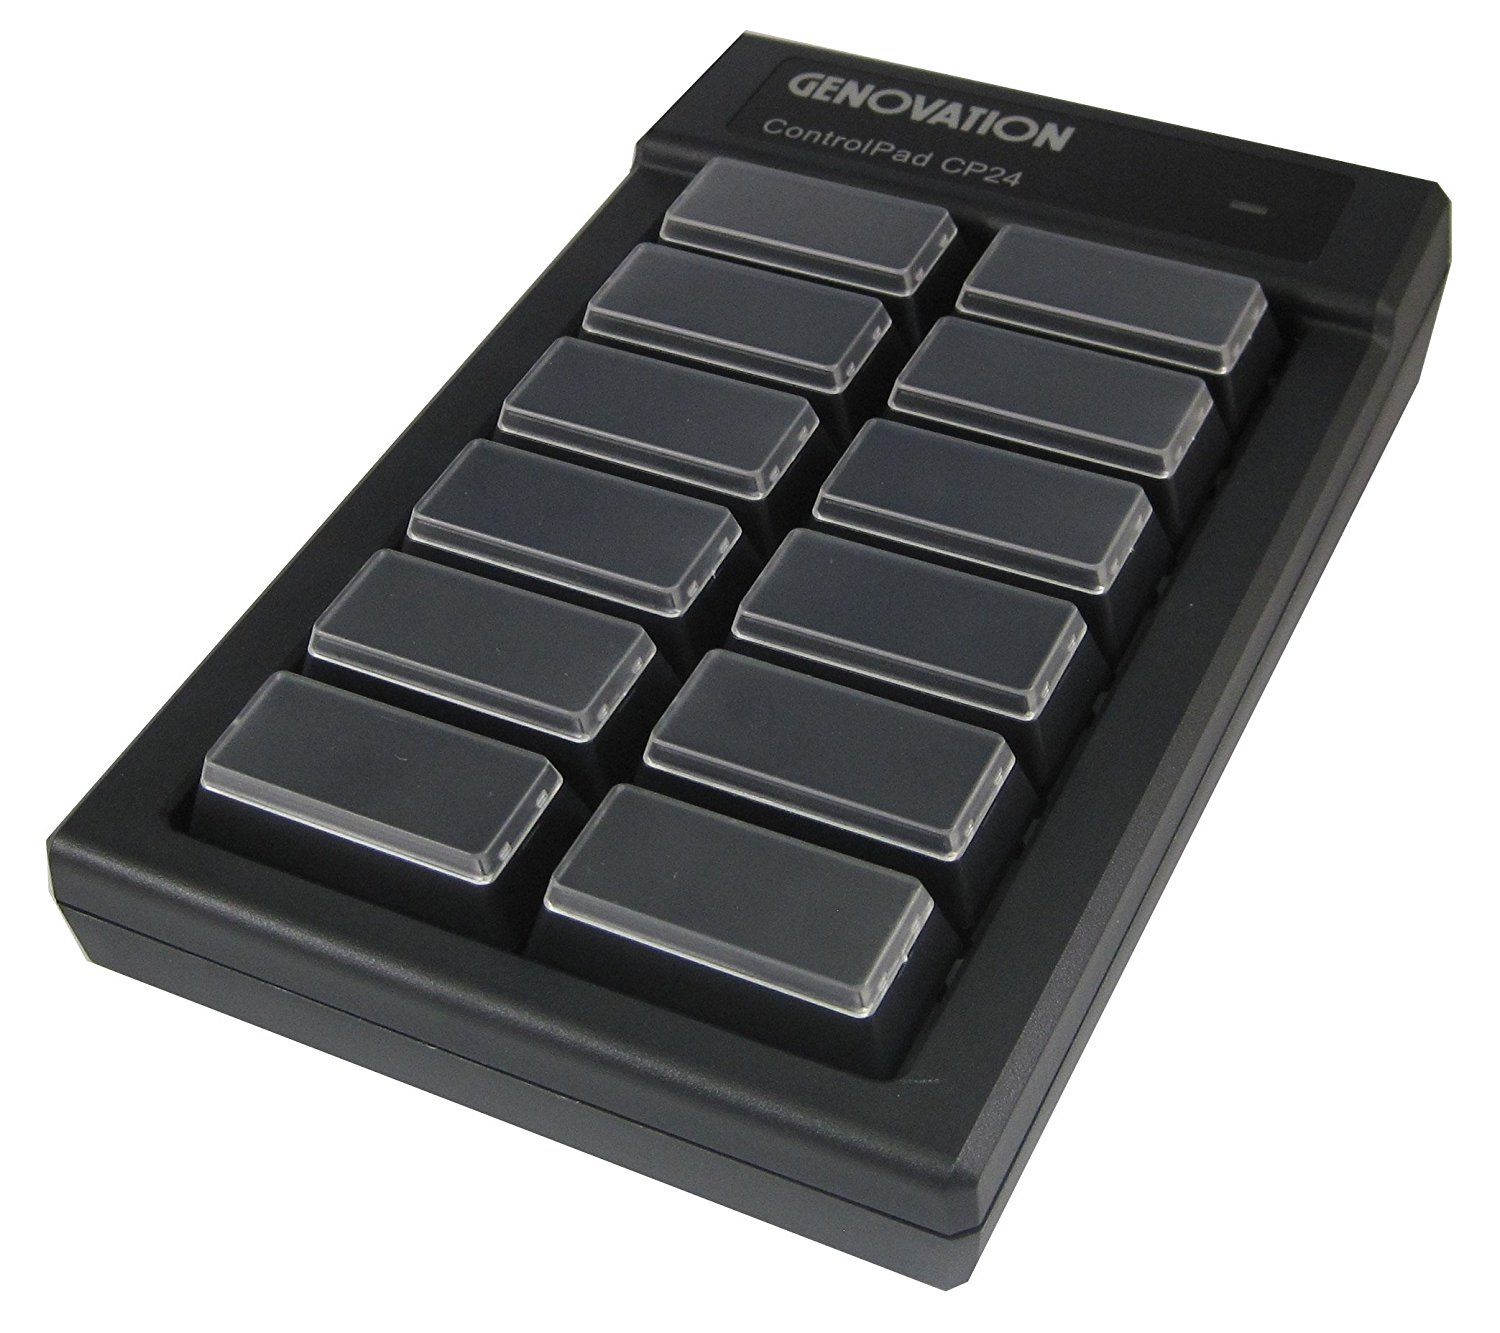 Genovation Controlpad CP24 USB Mechanical Keypad Black CP24-USBH